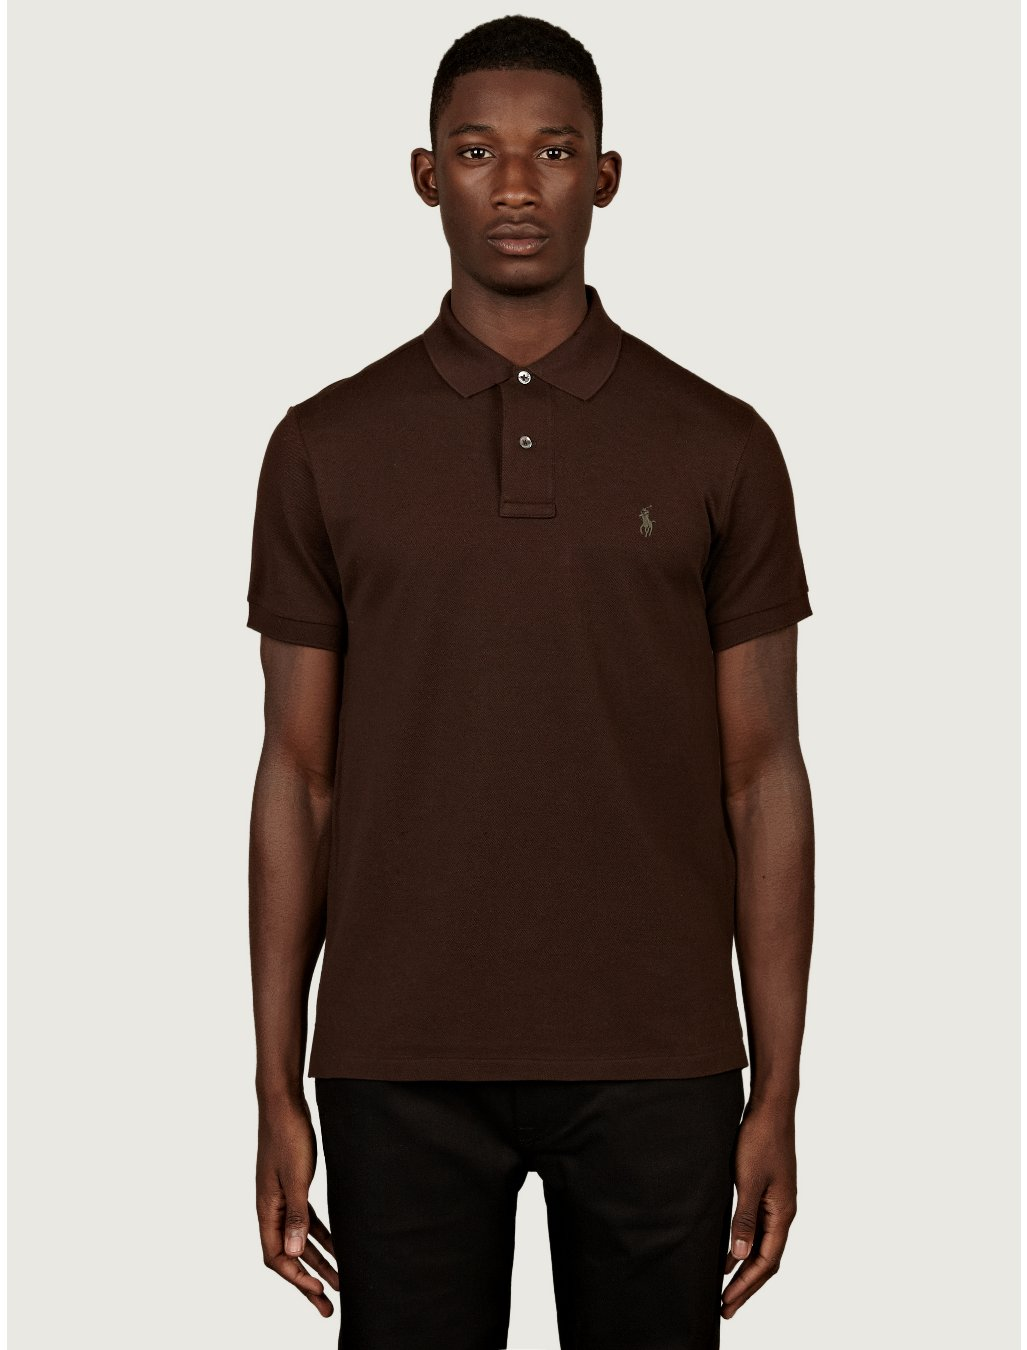 Polo ralph lauren mens slim fit polo shirt in brown for Man in polo shirt